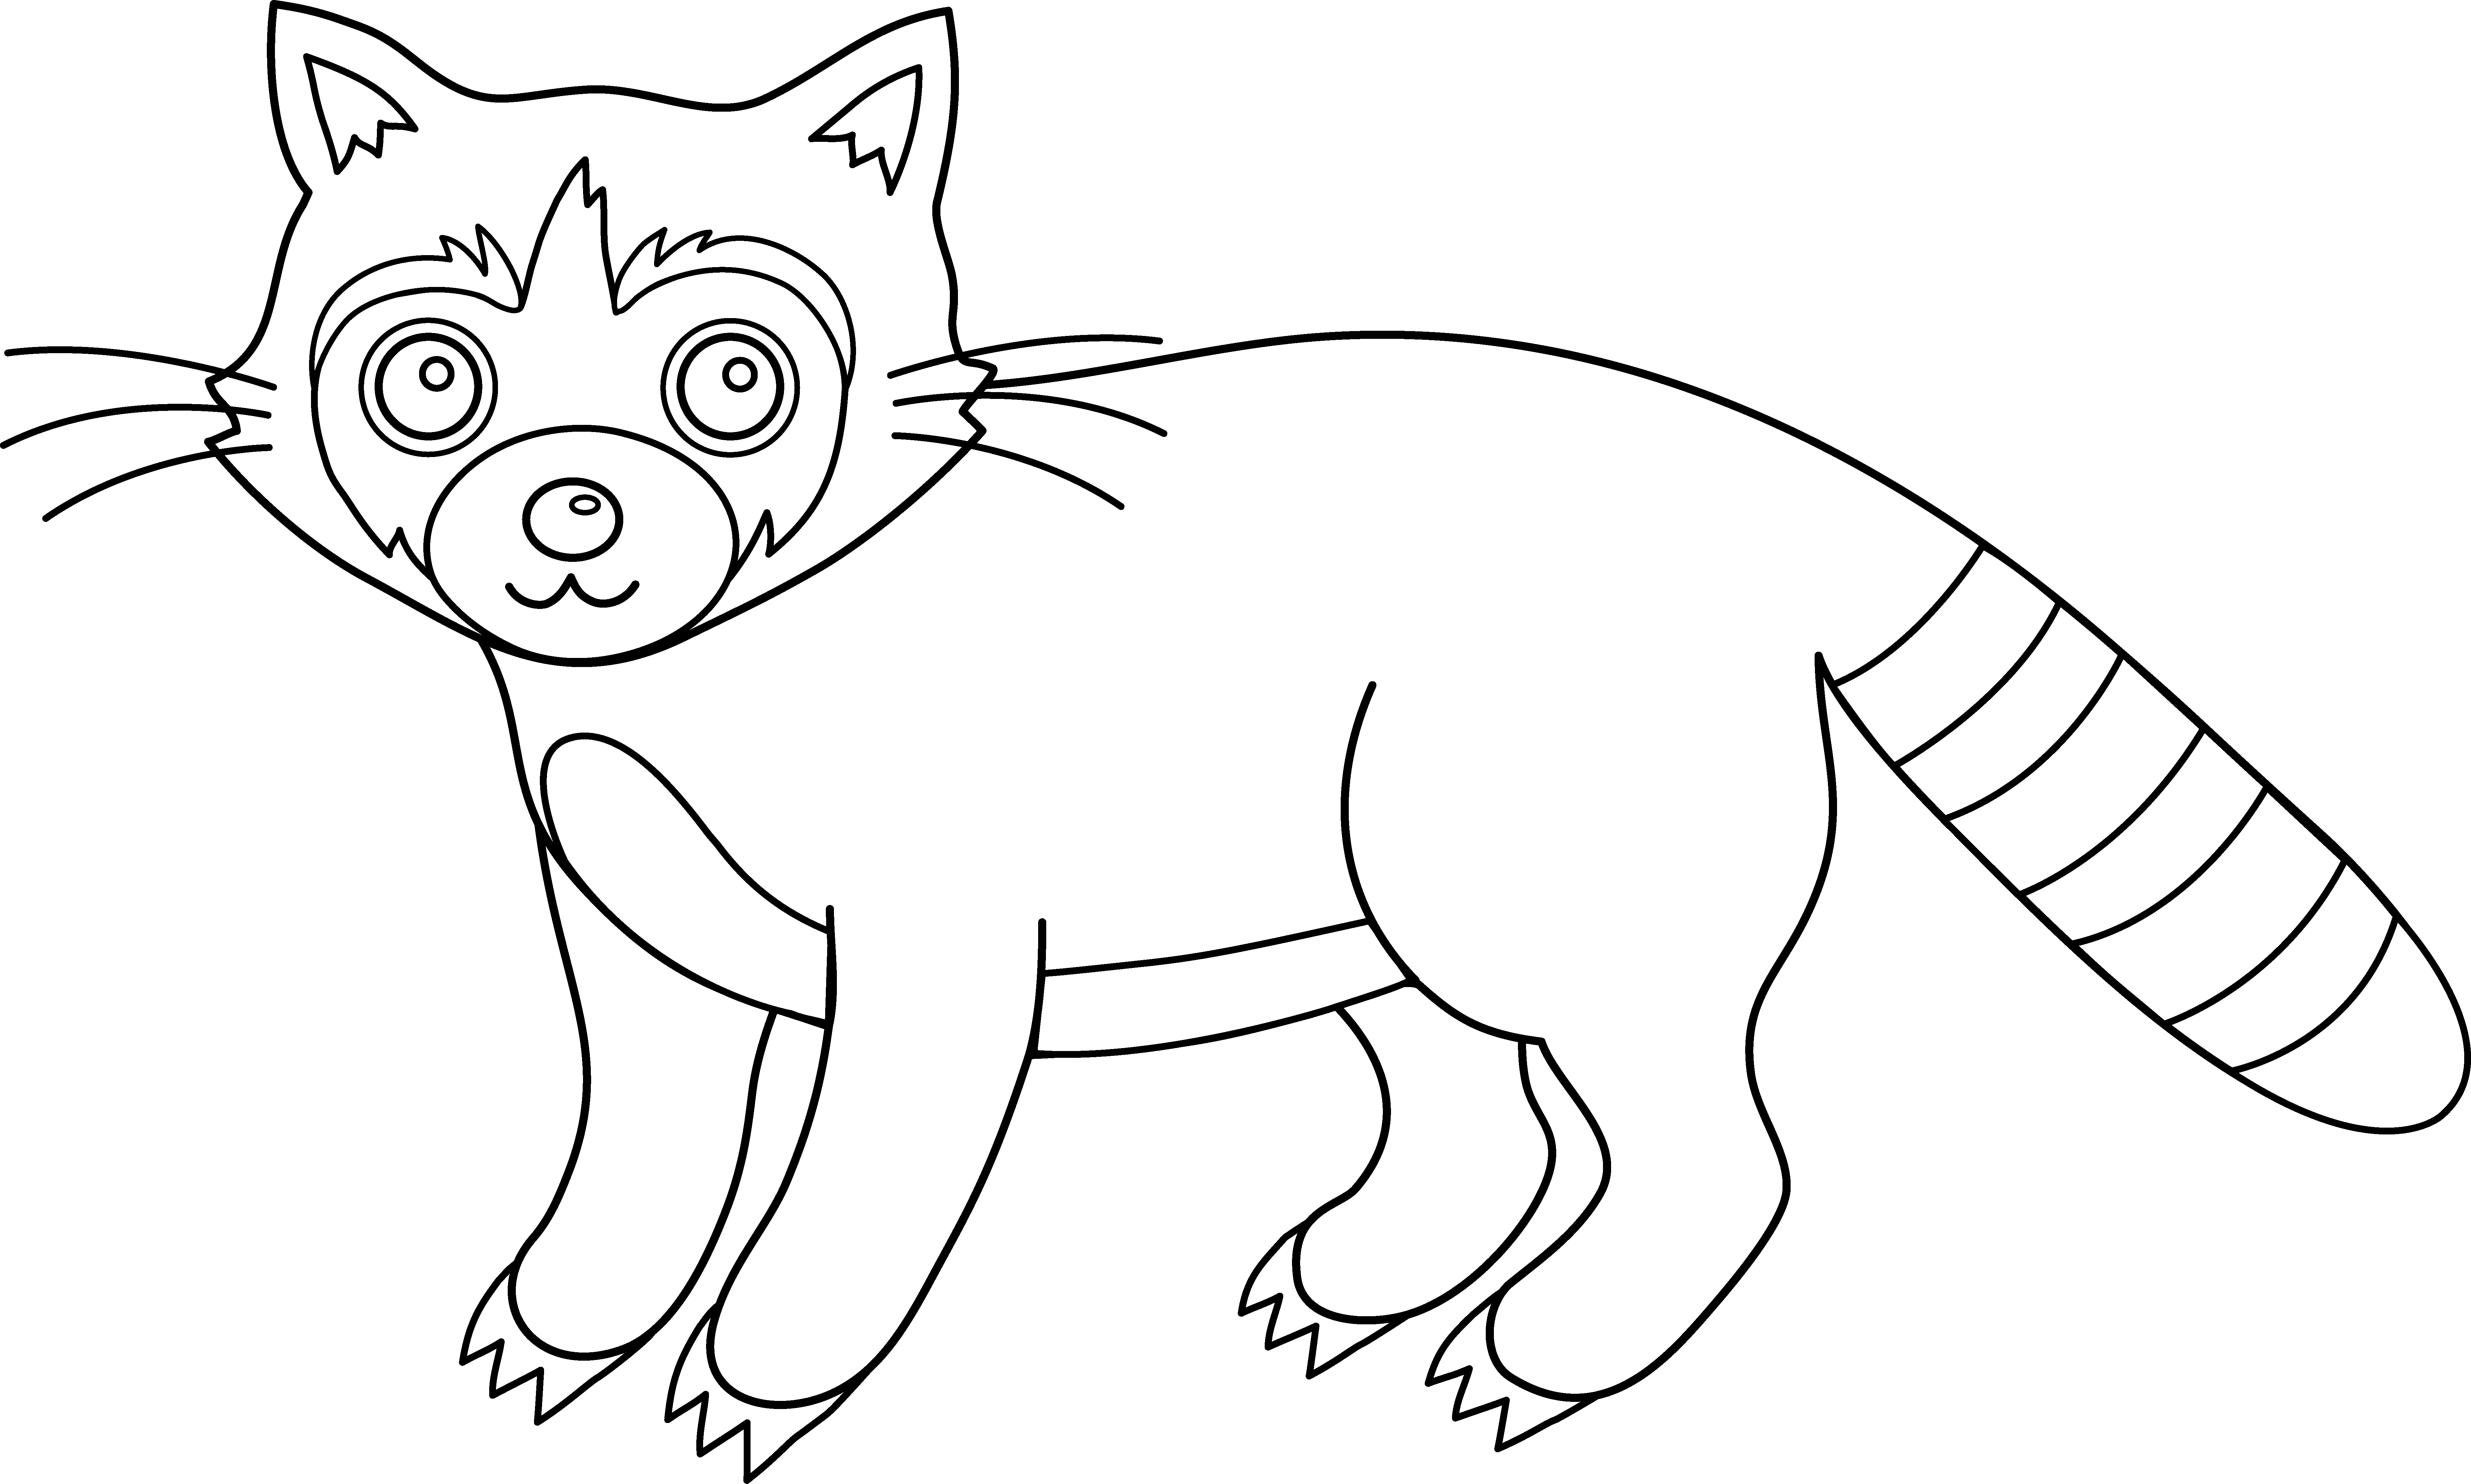 Cartoon Coloring Colorable Raccoon Raccoon Line Art : coloring ...